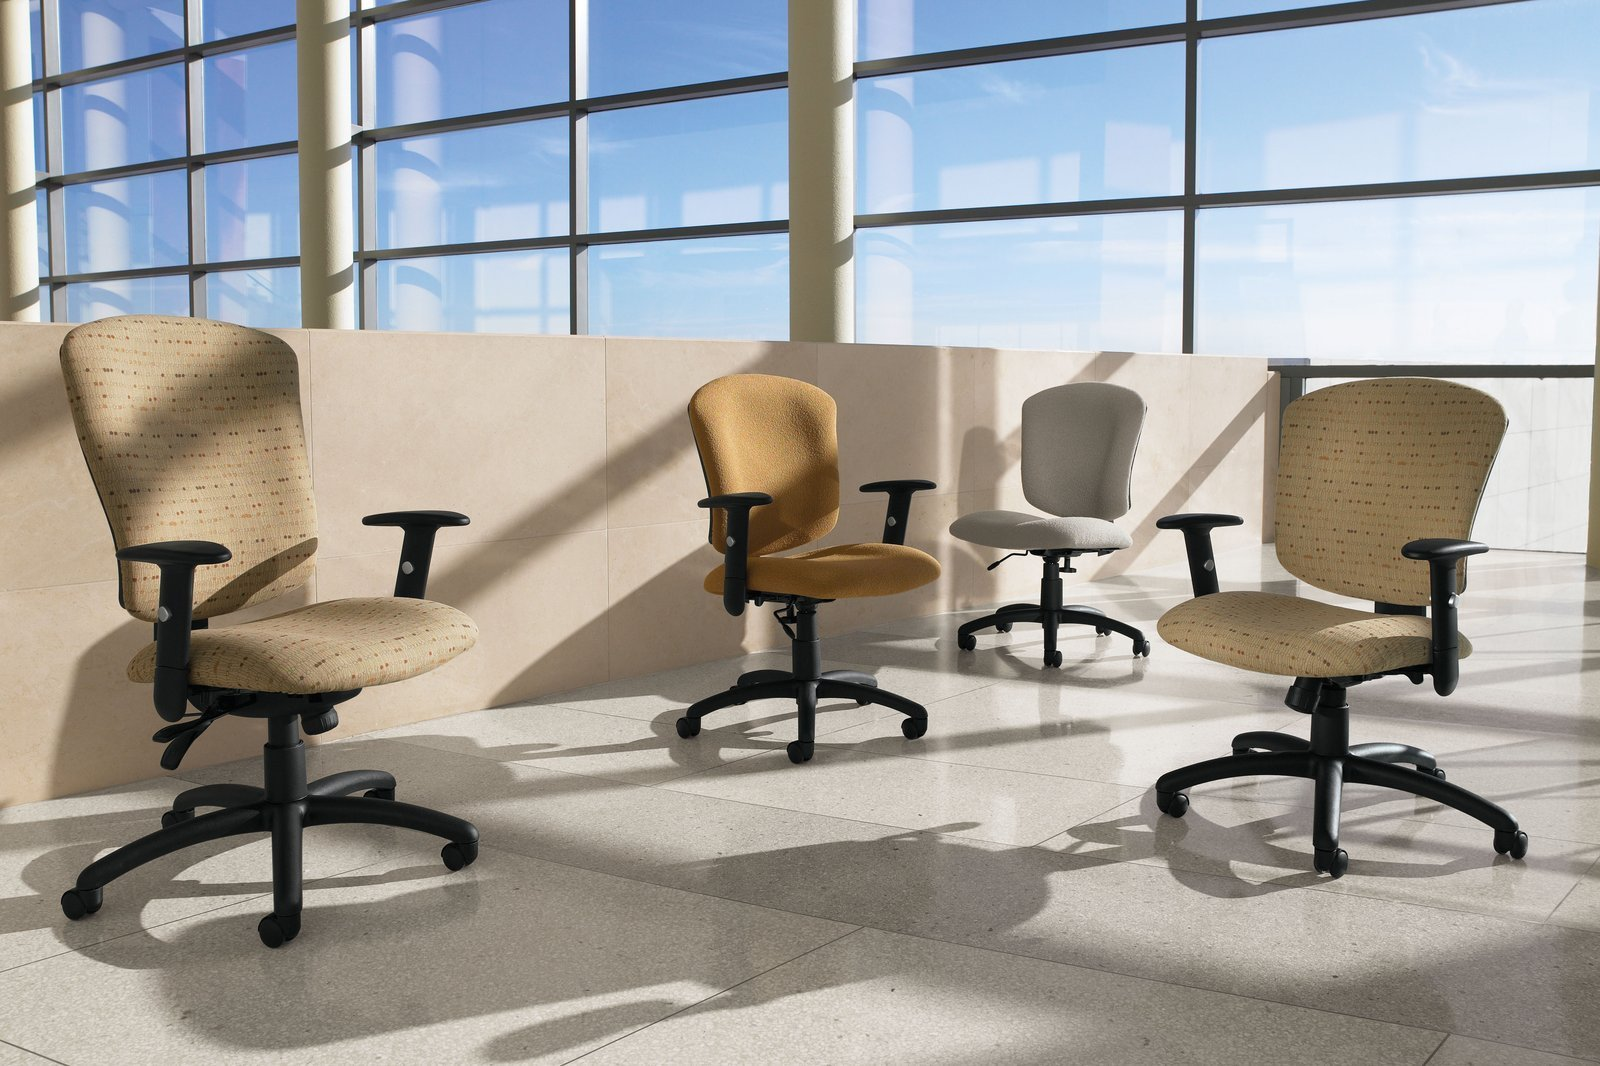 Studio shot of four Supra X office chairs on the mezzanine. One high backed model of this chair is next to a trio of medium backed chairs, an armless chair in back.